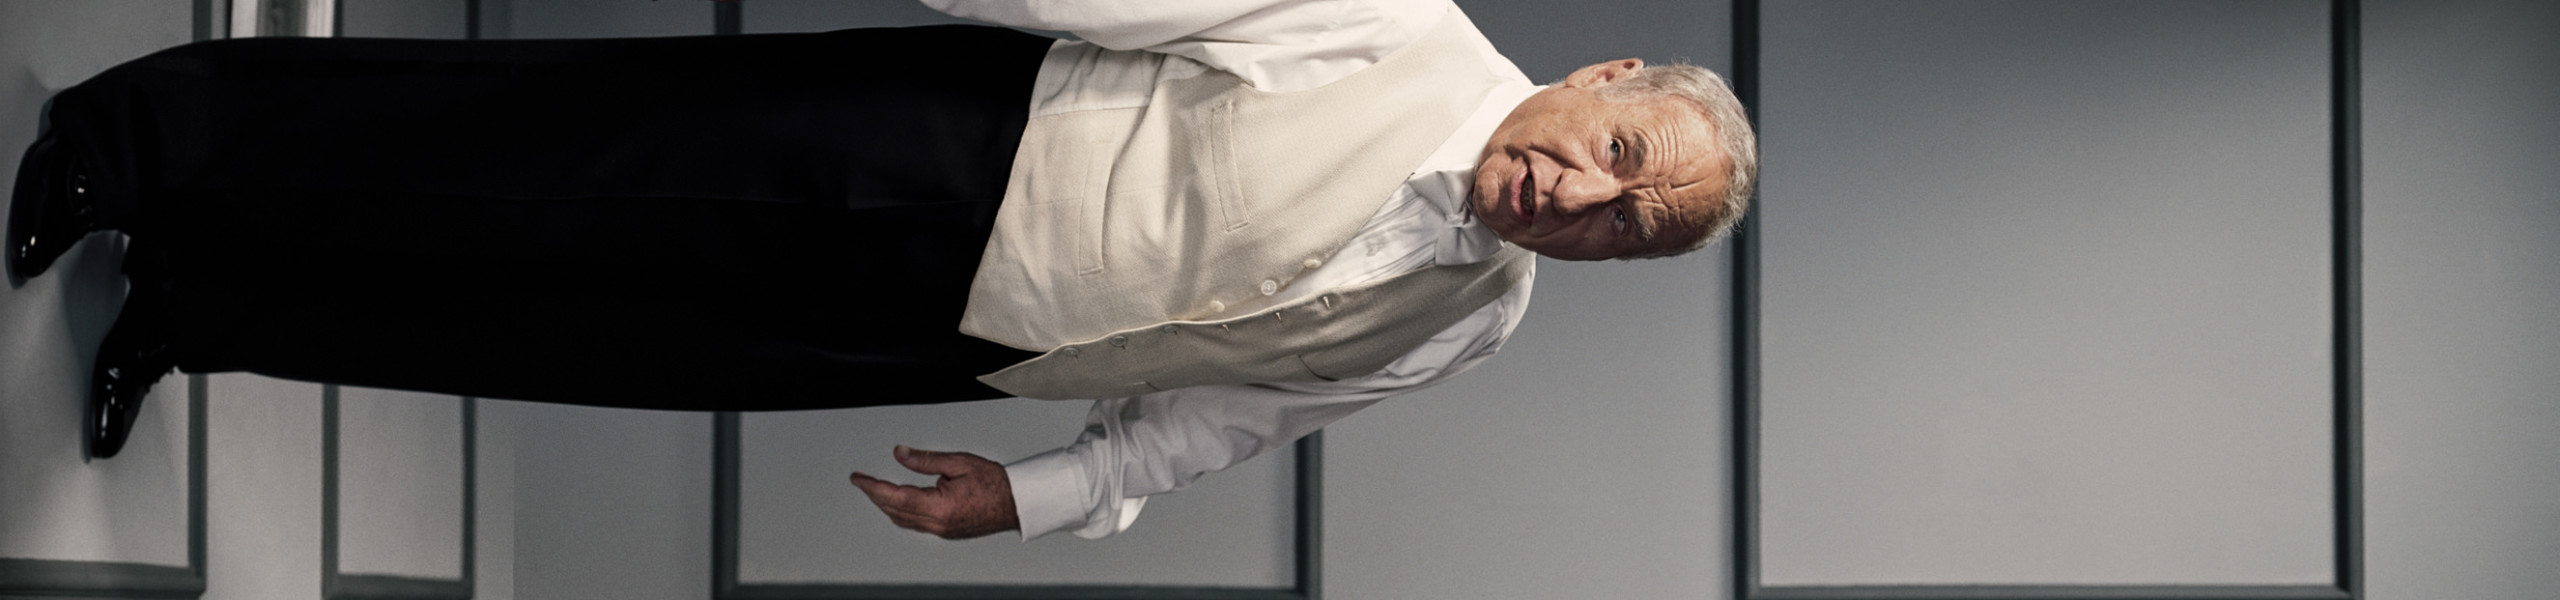 comedic-actor-and-director-mel-brooks-by-portrait-photographer-michael-grecco-scaled.jpg